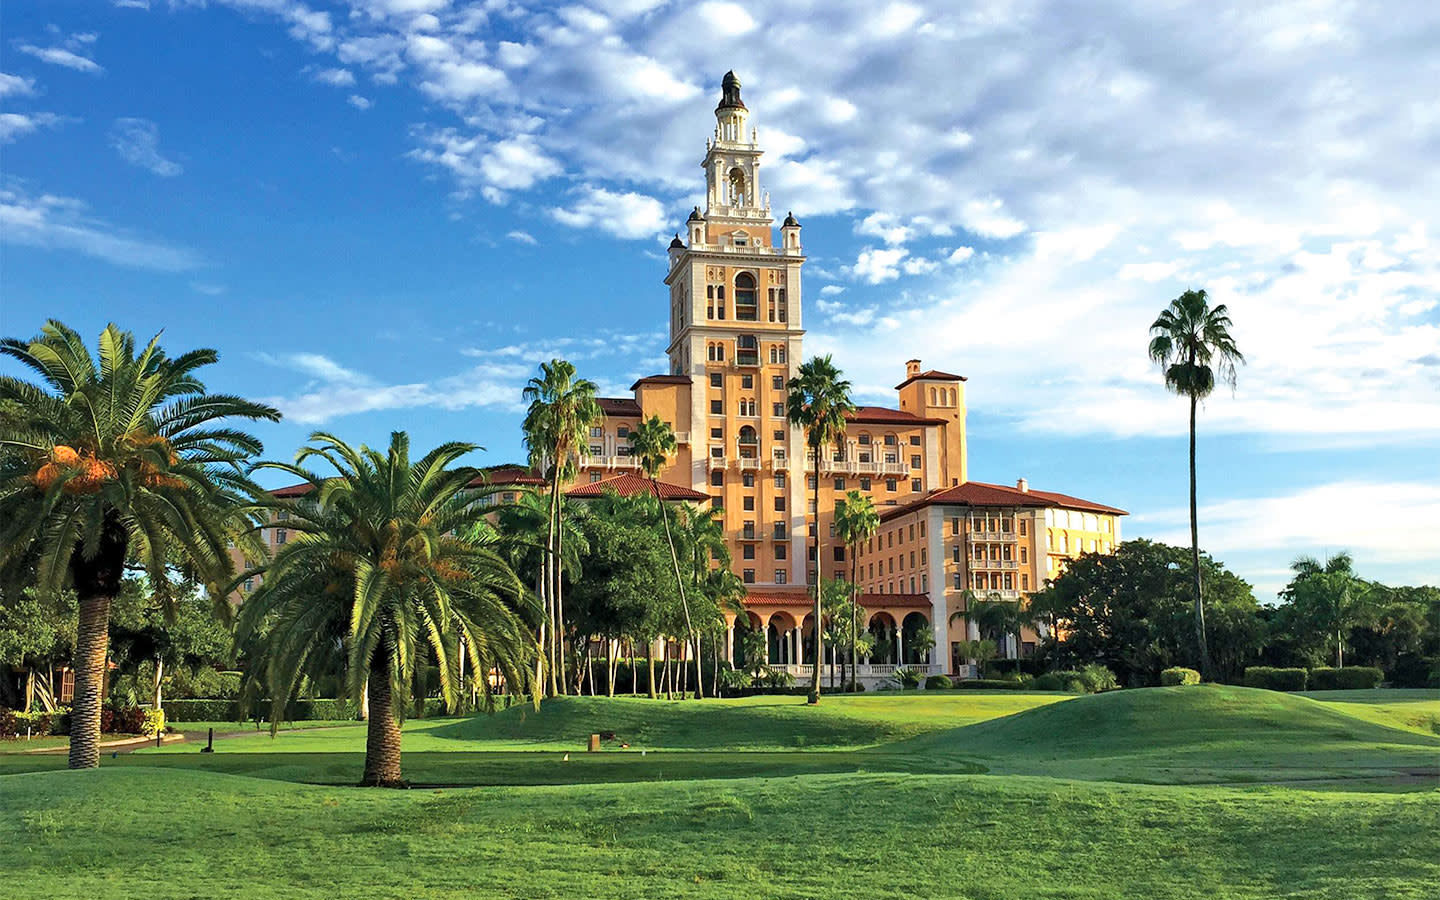 The Biltmore Hotel Miami